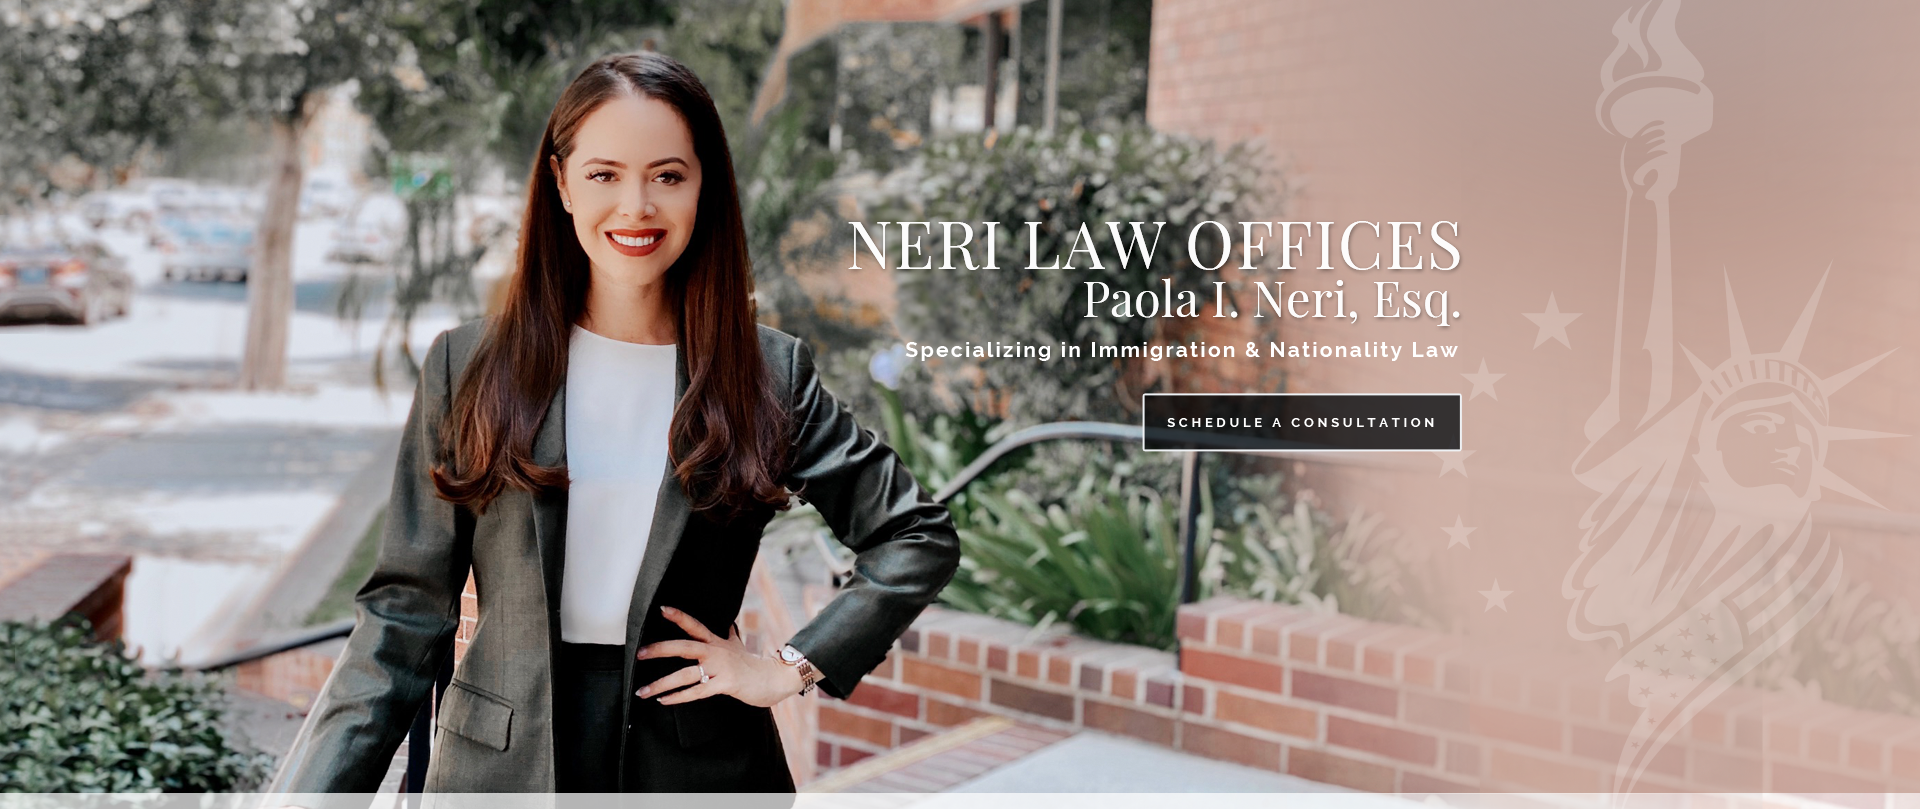 Immigration Attorney Neri Law Offices Specializing in Immigration and Nationality Law